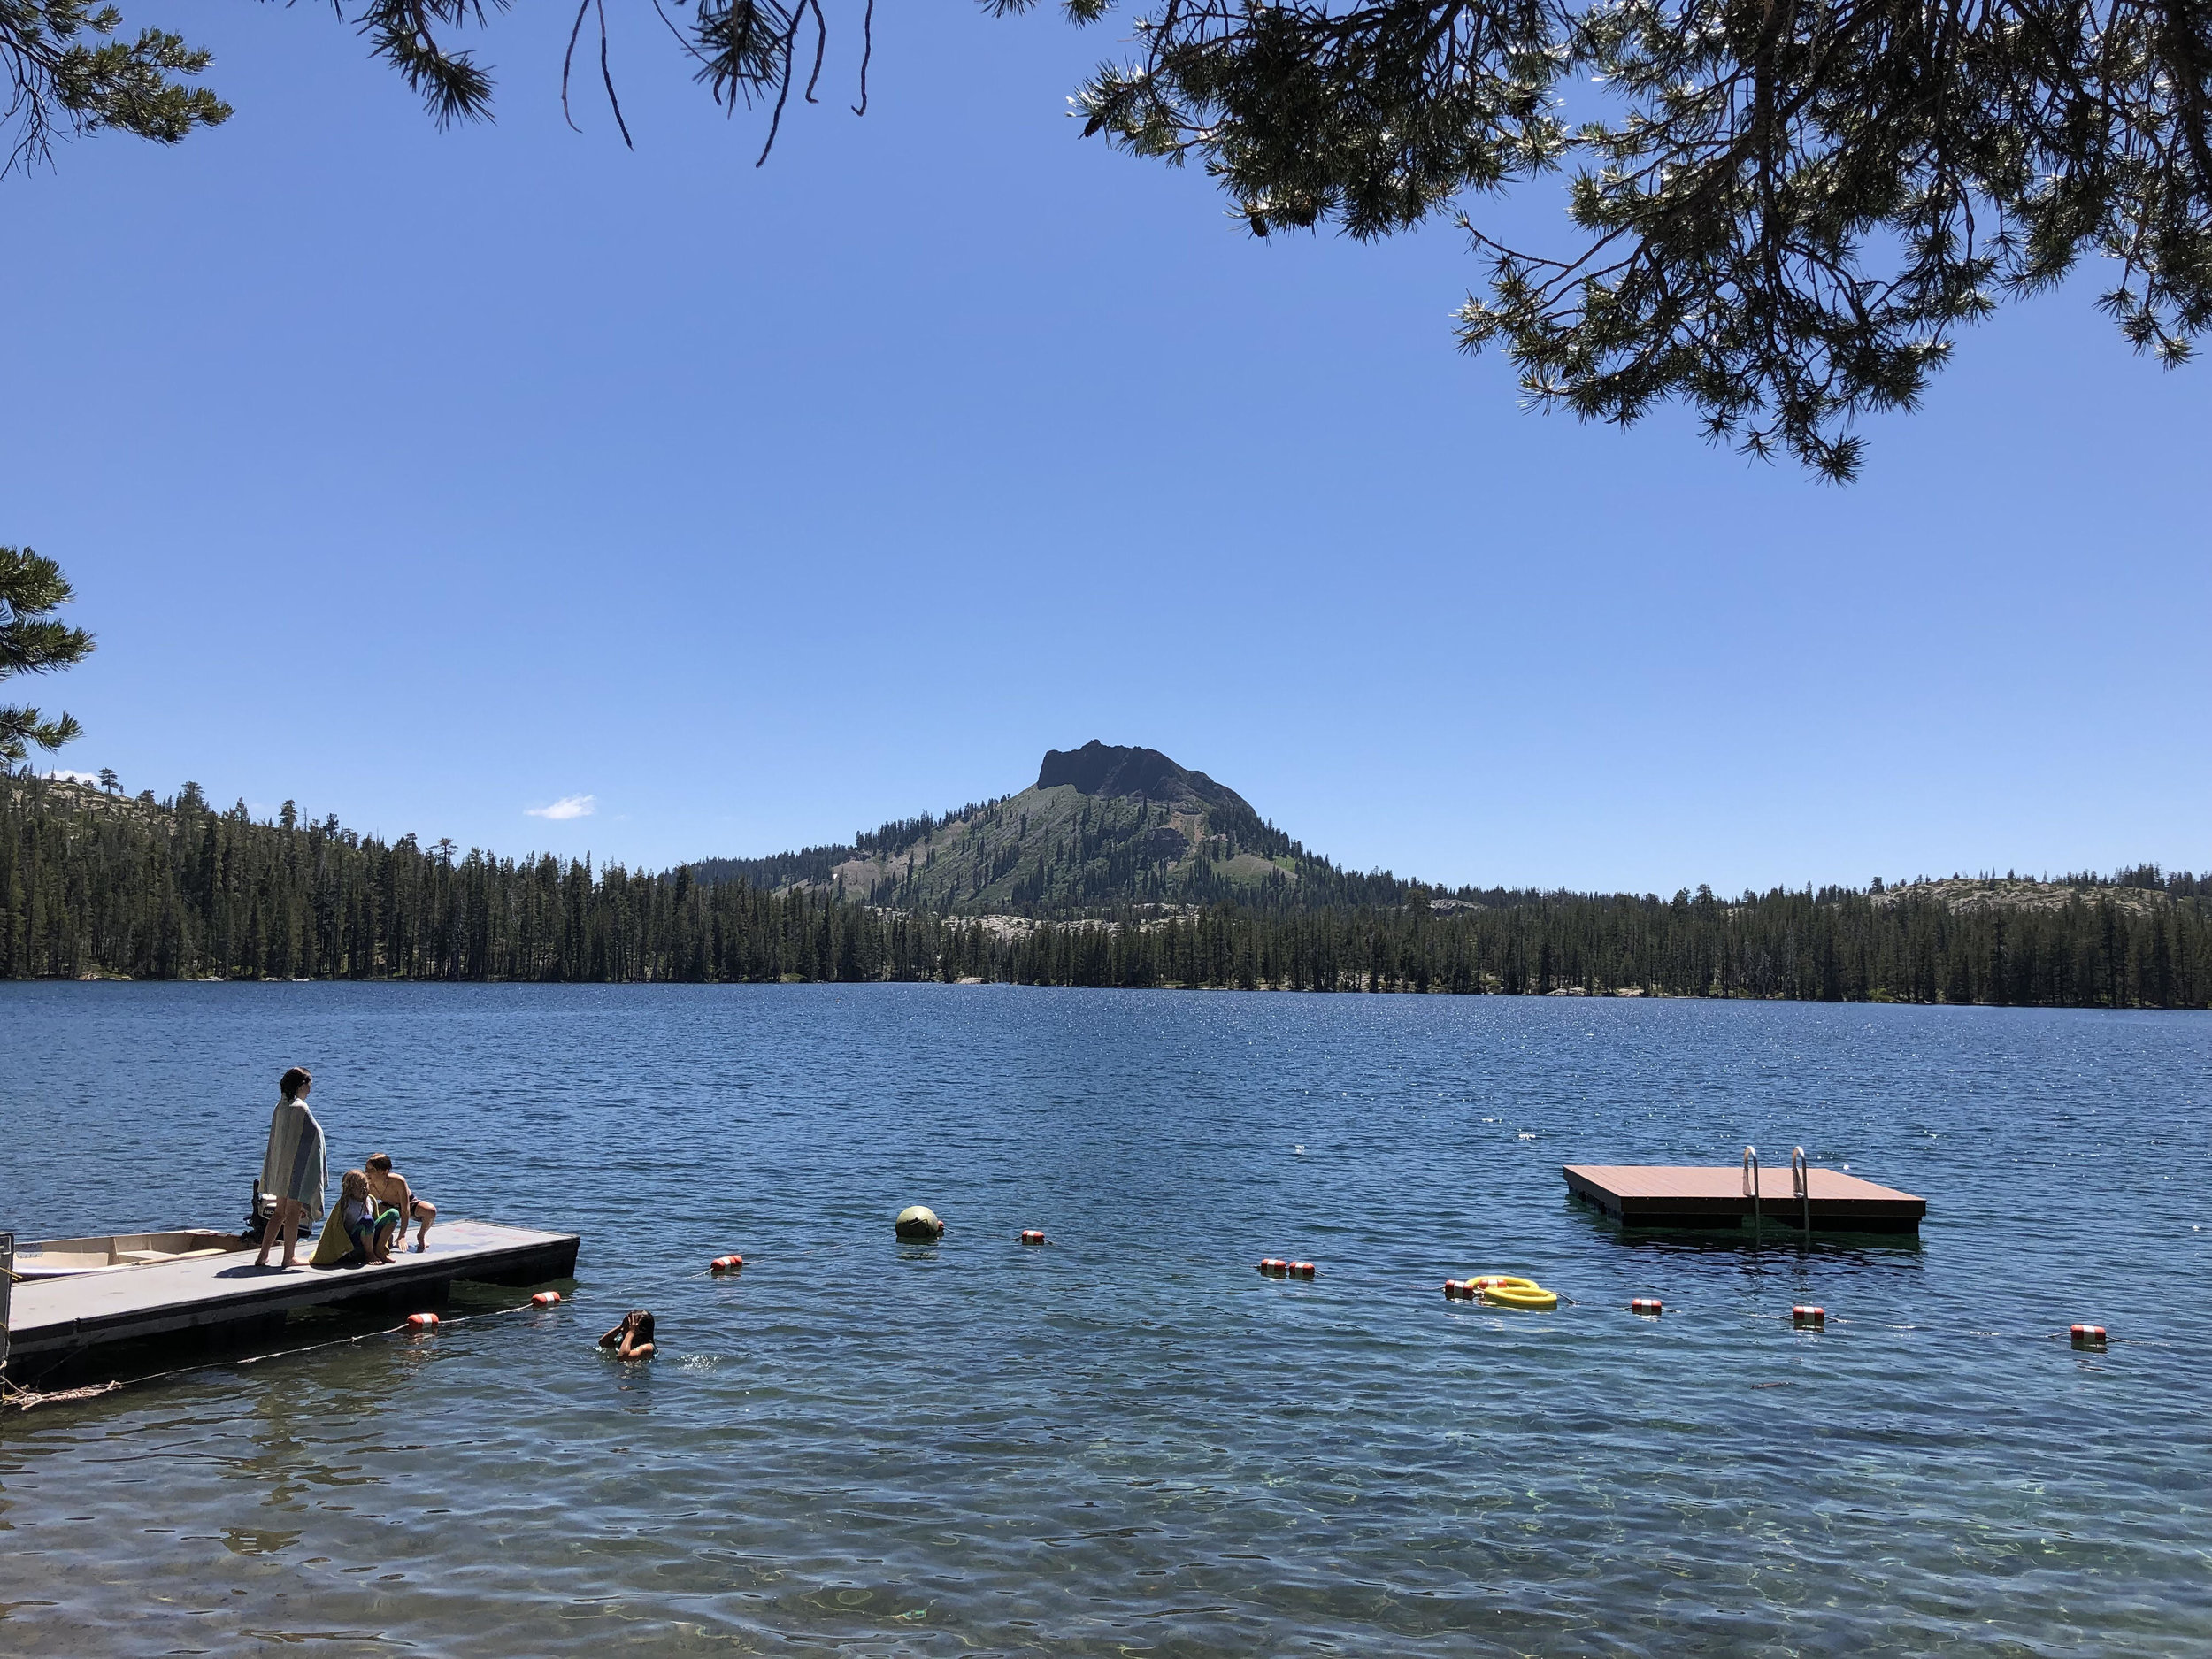 register - Reserve your spot at camp, including meals, storytelling, and camping in the High Sierra. Our camp is open to adults and youth of all ages. Registration is required to attend.